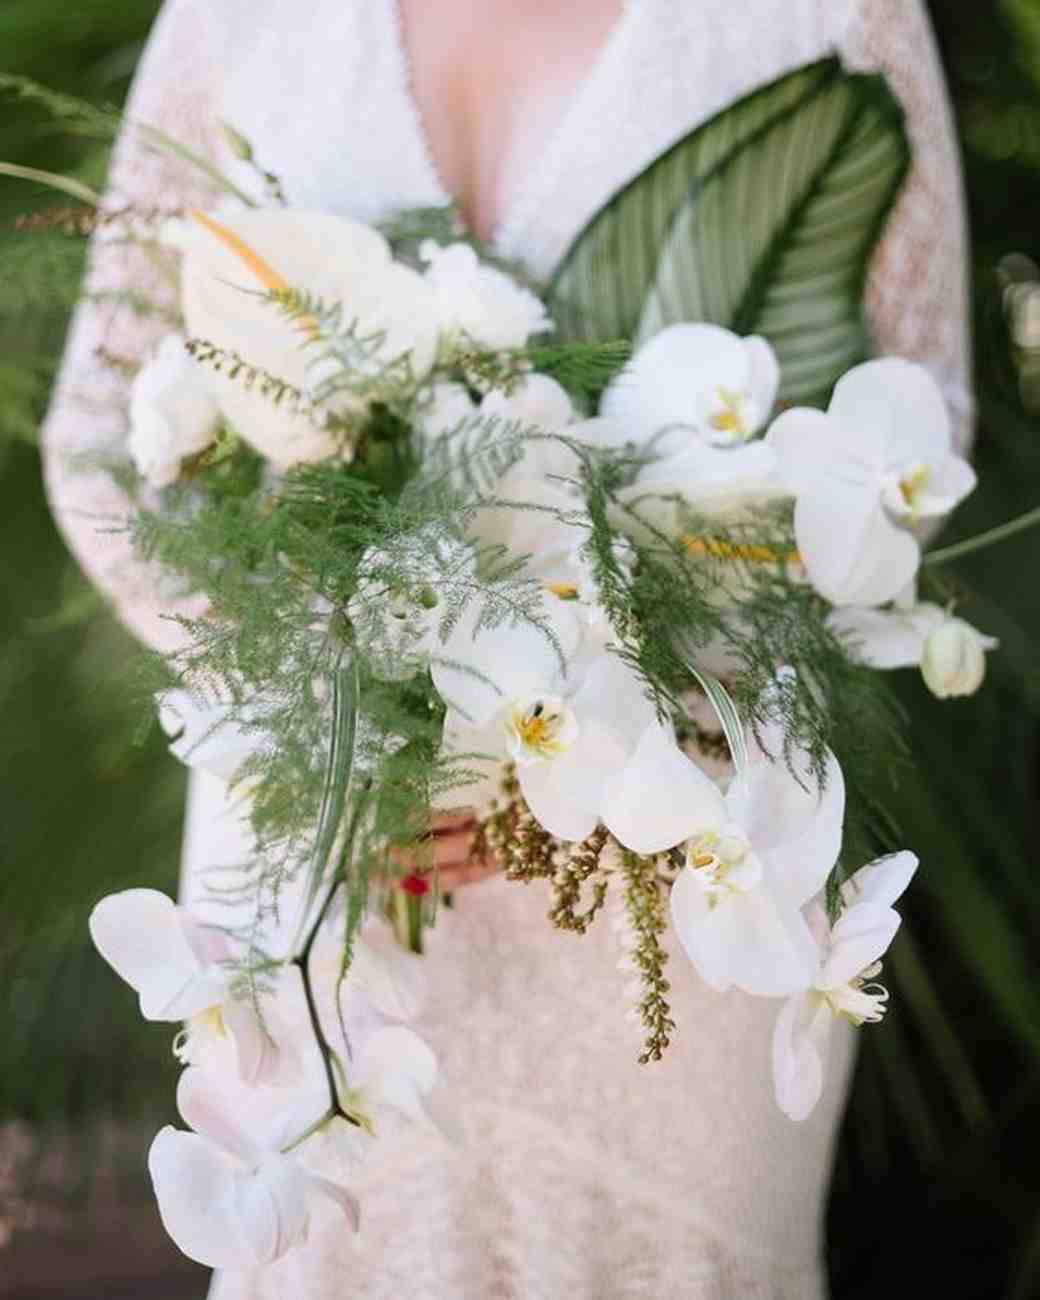 Chinese evergreens and orchids tropical leaf bouquet